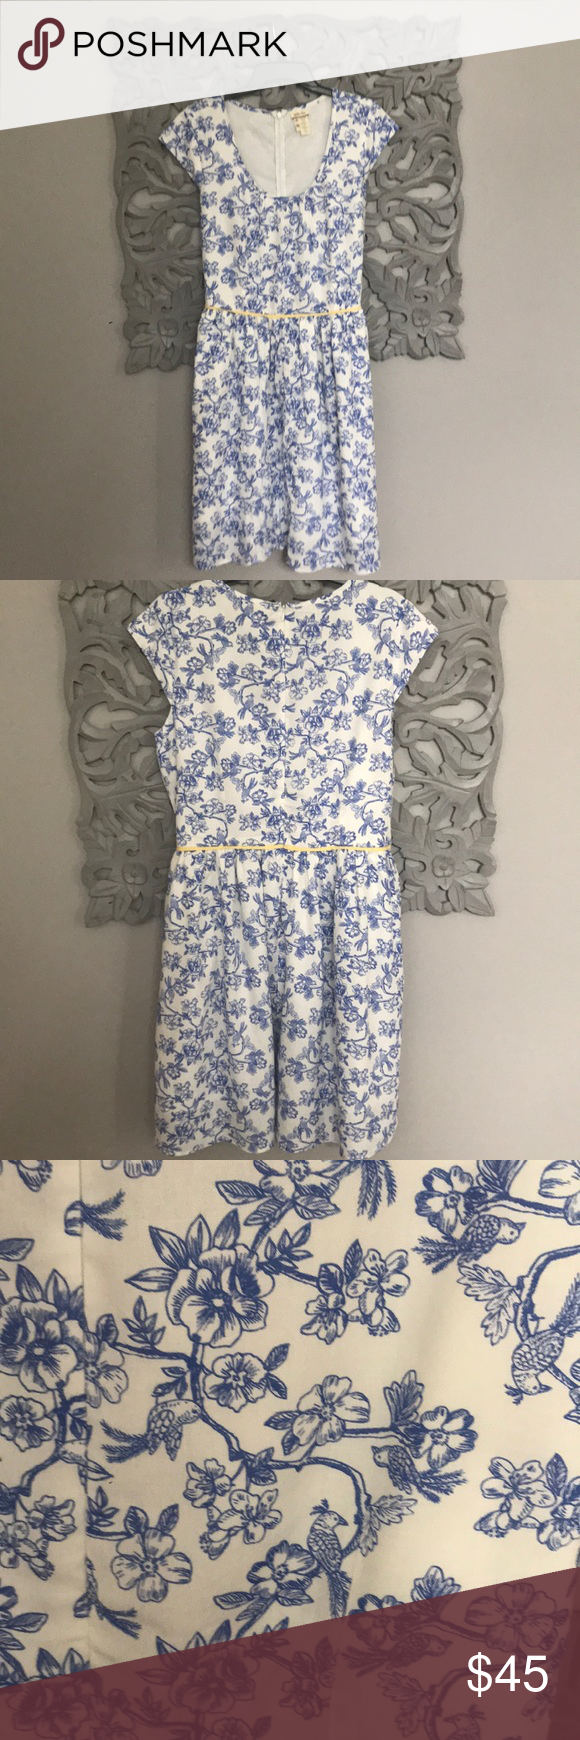 6187f36ae2d9 Matilda Jane Hello Lovely Bluebell Dress NWOT Matilda Jane Women s Dress  NWOT. Beautiful Floral Blue and White Bird Print with a Splash of Yellow at  Waist .